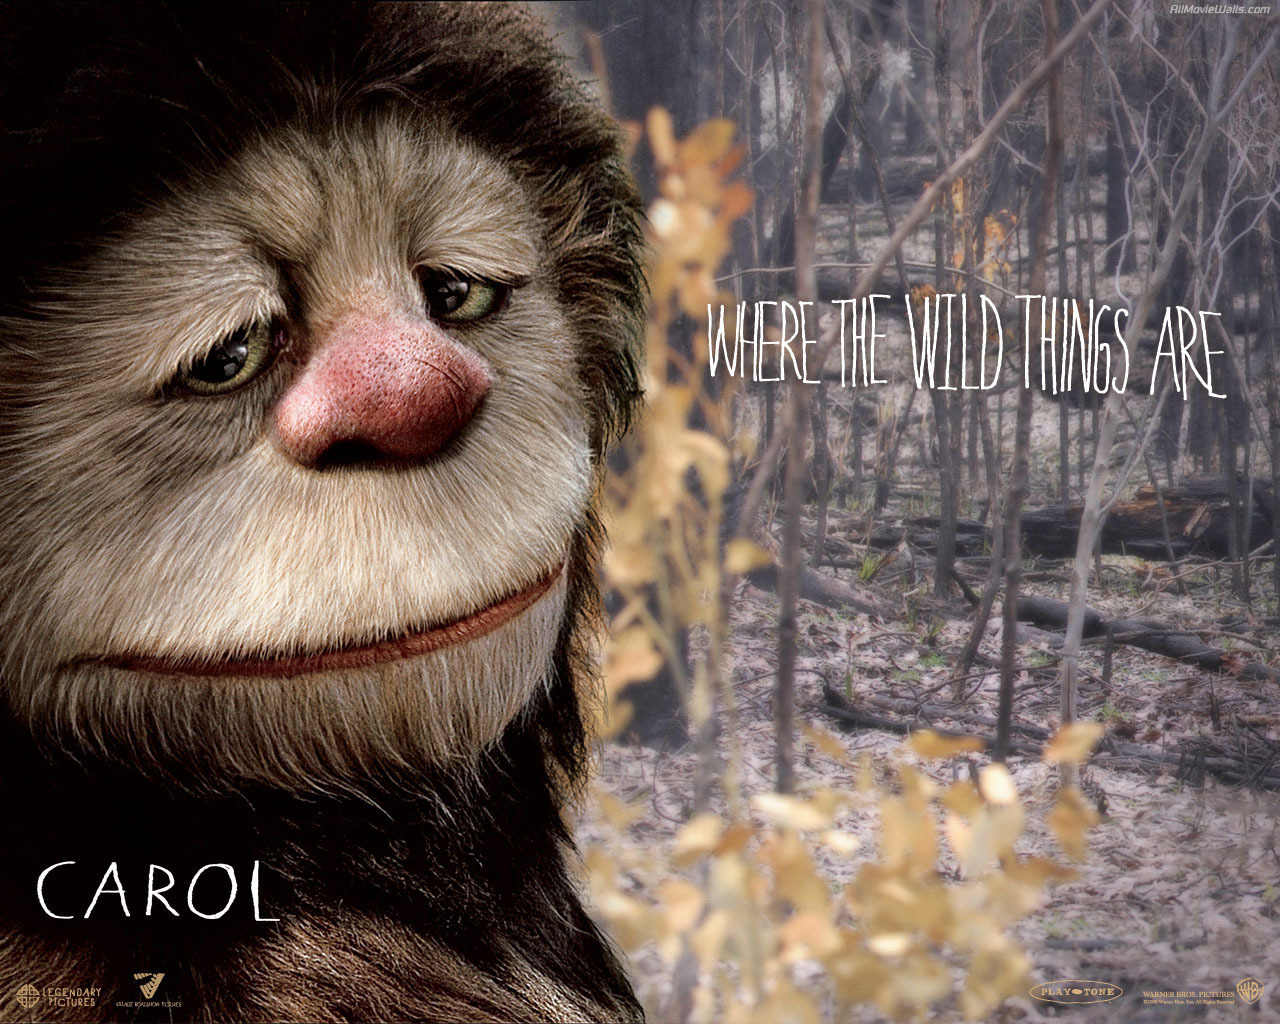 Where the Wild Things Are - Movies Wallpaper (9133028 ...